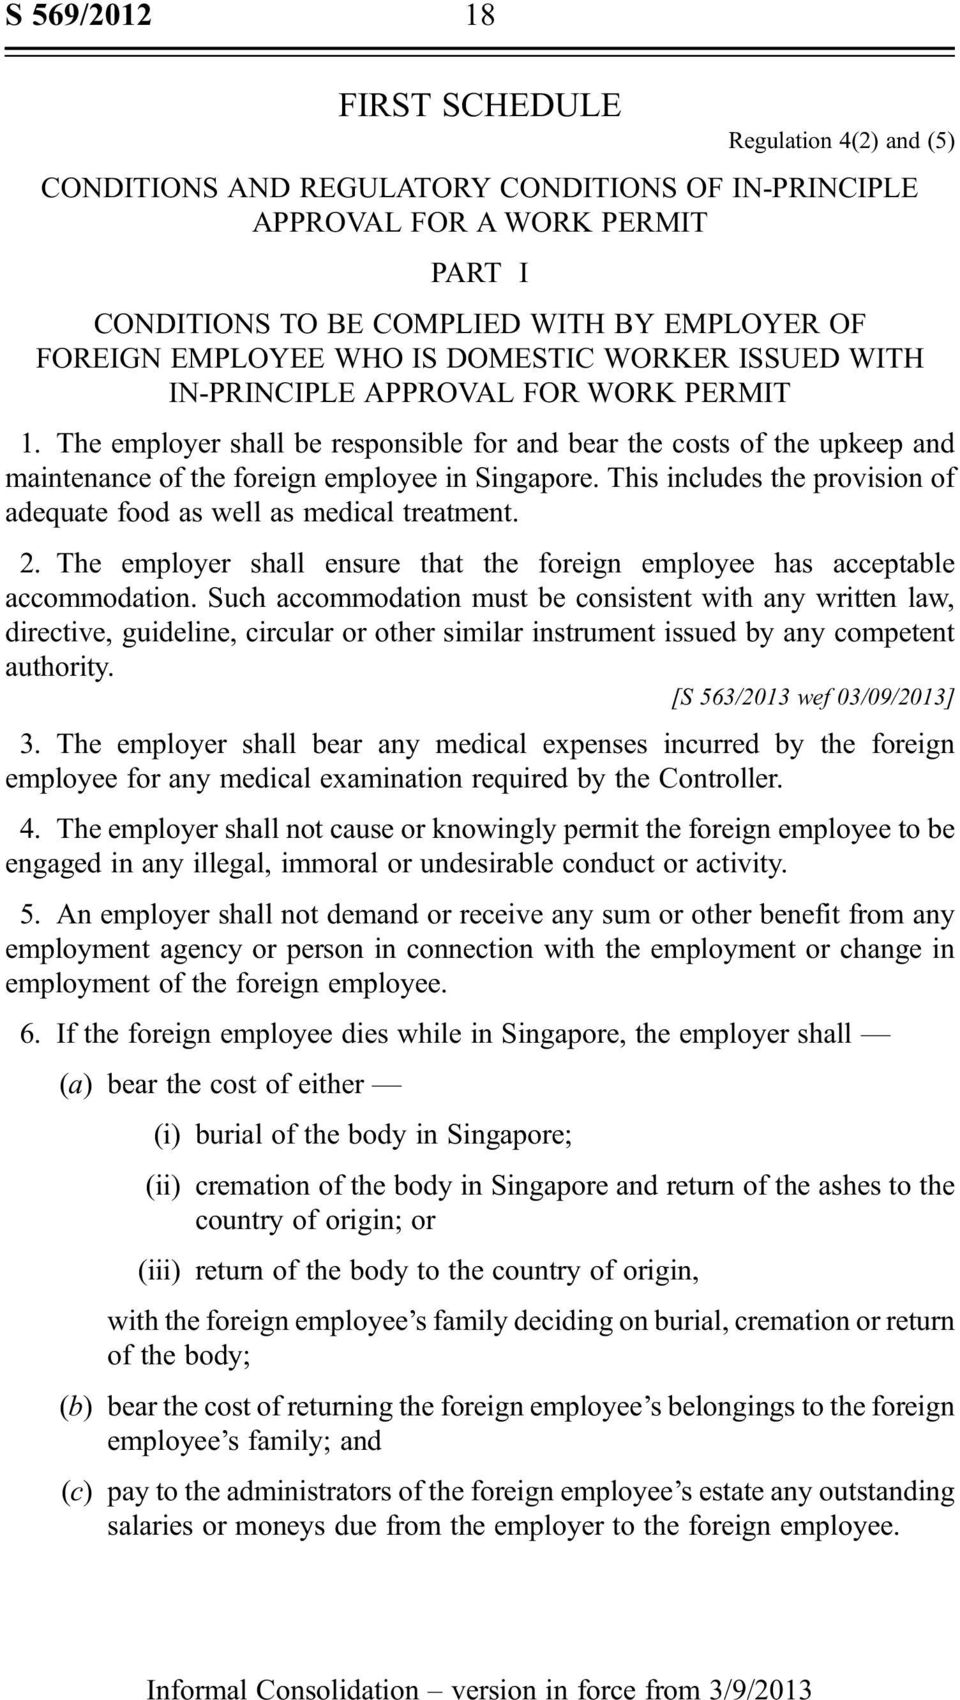 The employer shall be responsible for and bear the costs of the upkeep and maintenance of the foreign employee in Singapore. This includes the provision of adequate food as well as medical treatment.